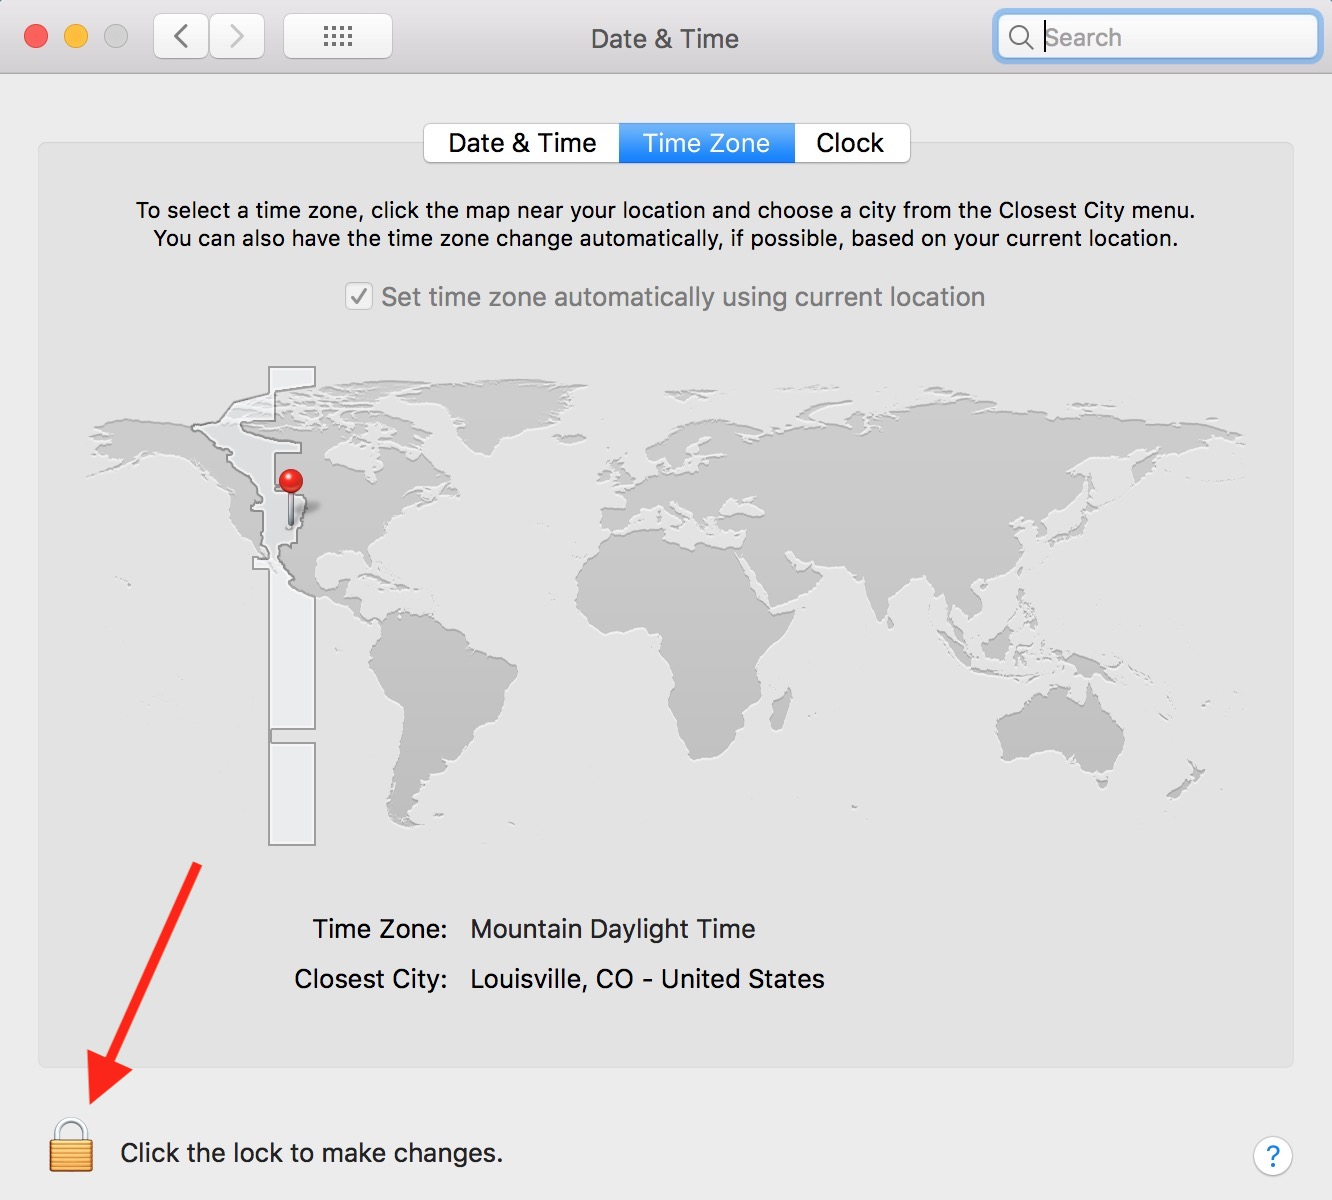 Click Lock to Authorize in Mac Date & Time preferences to change automatic time zone setting